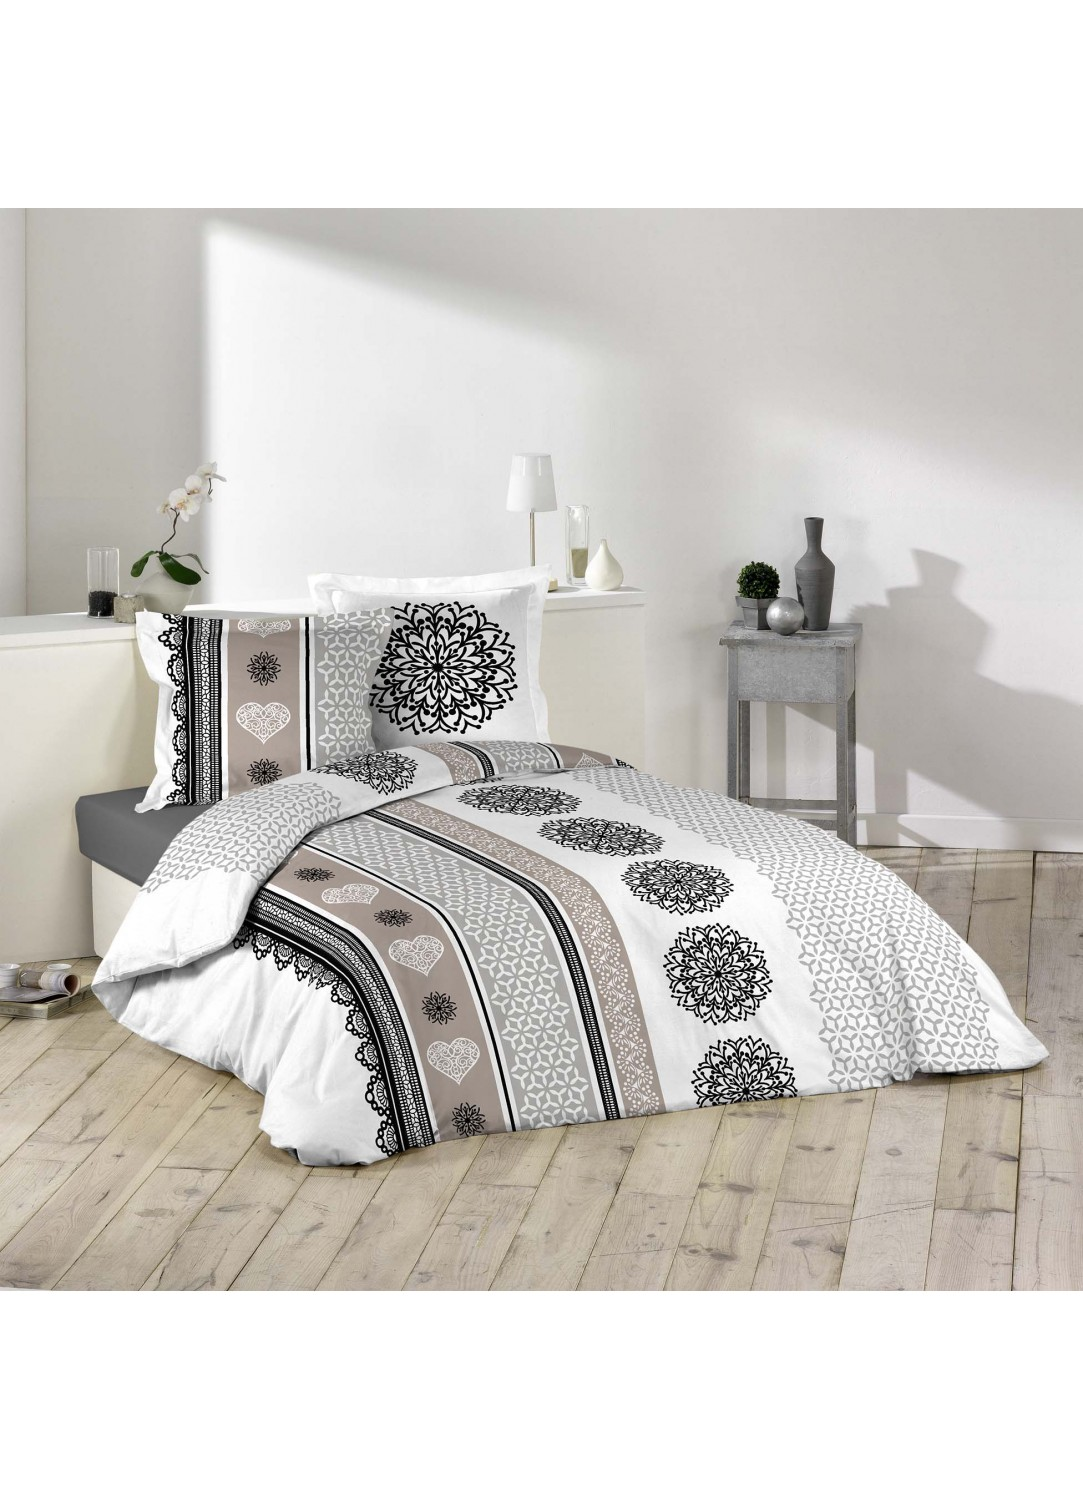 parure de lit imprim e mandalas et coeurs multicolors homemaison vente en ligne parures. Black Bedroom Furniture Sets. Home Design Ideas